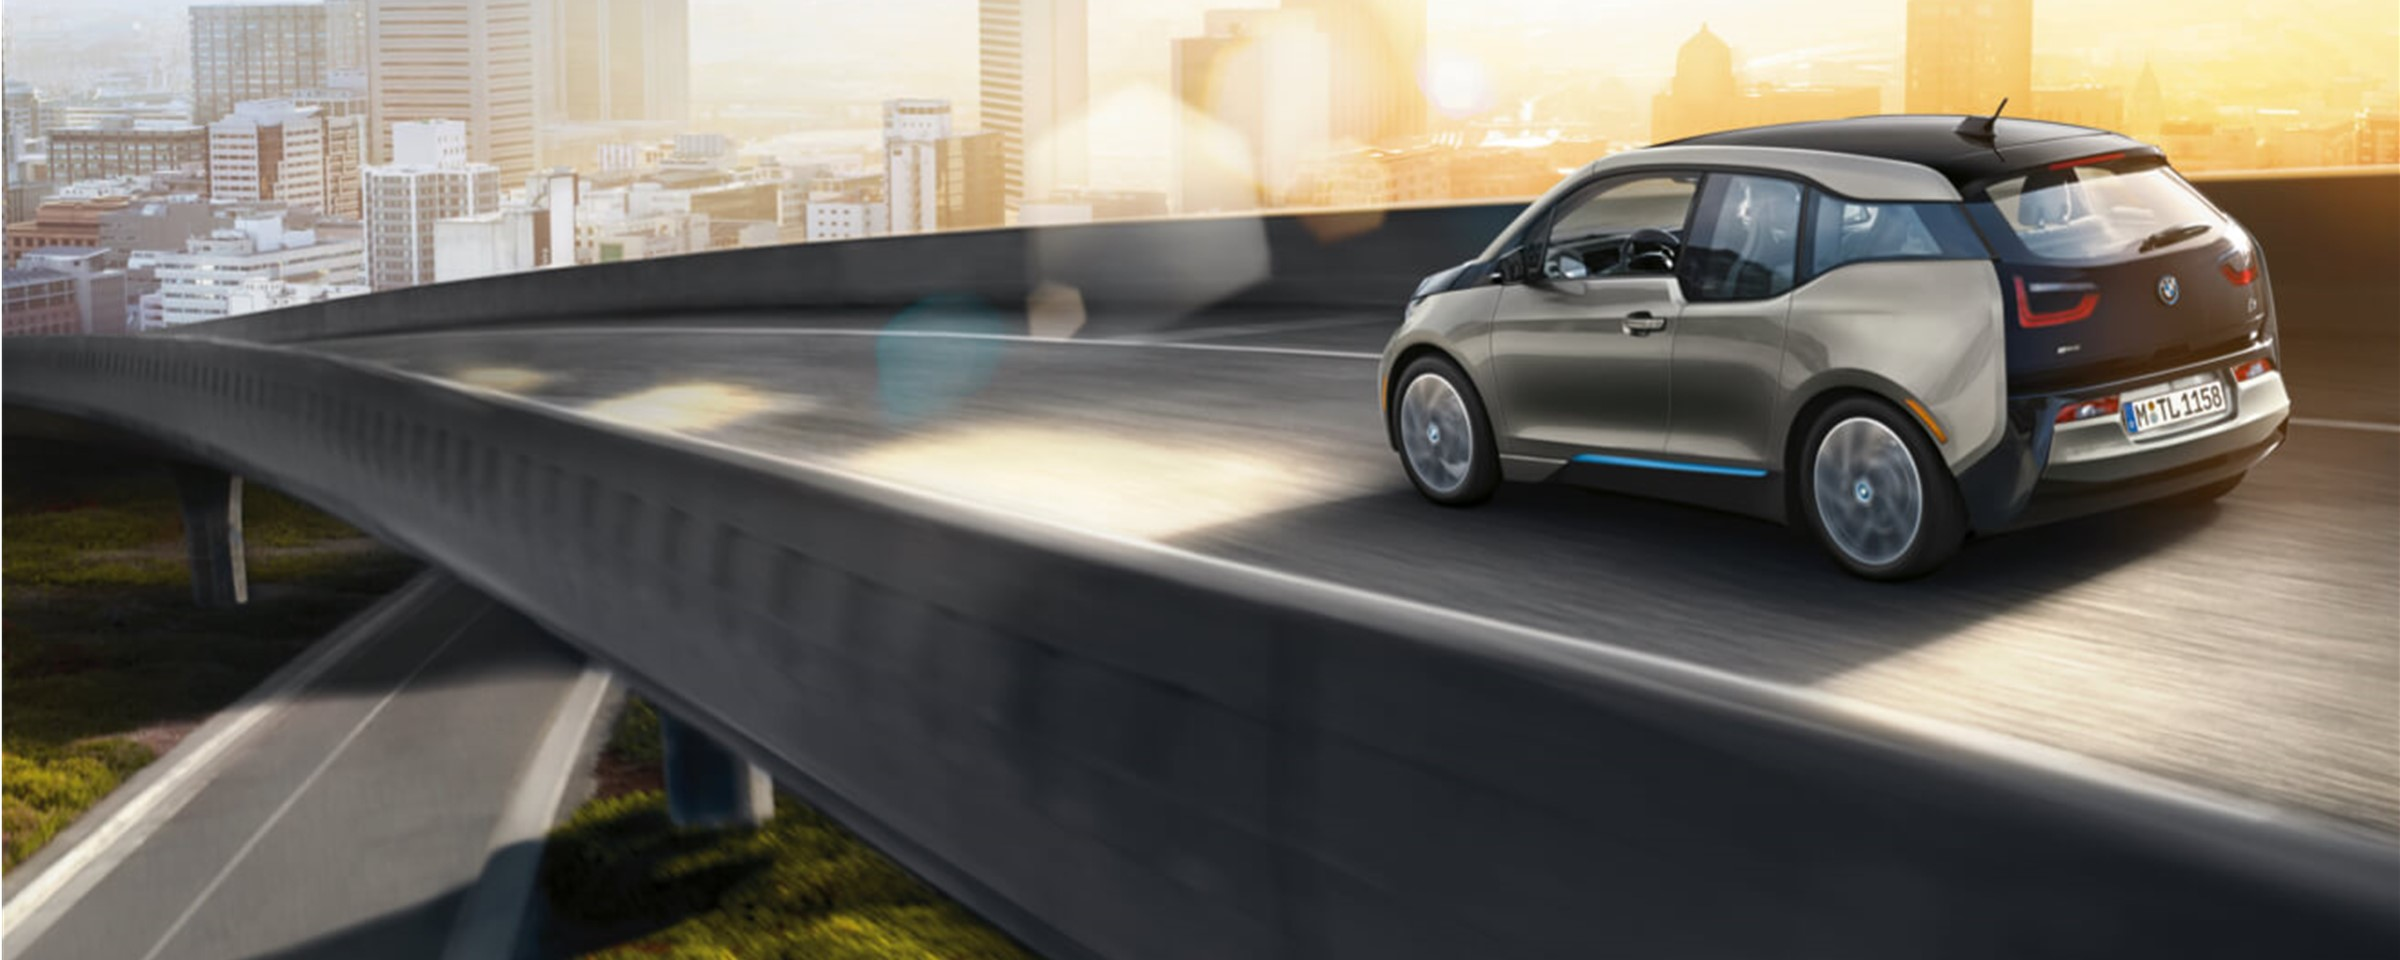 New Bmw Models Qualify For Cav Decals And Hov Lane Use